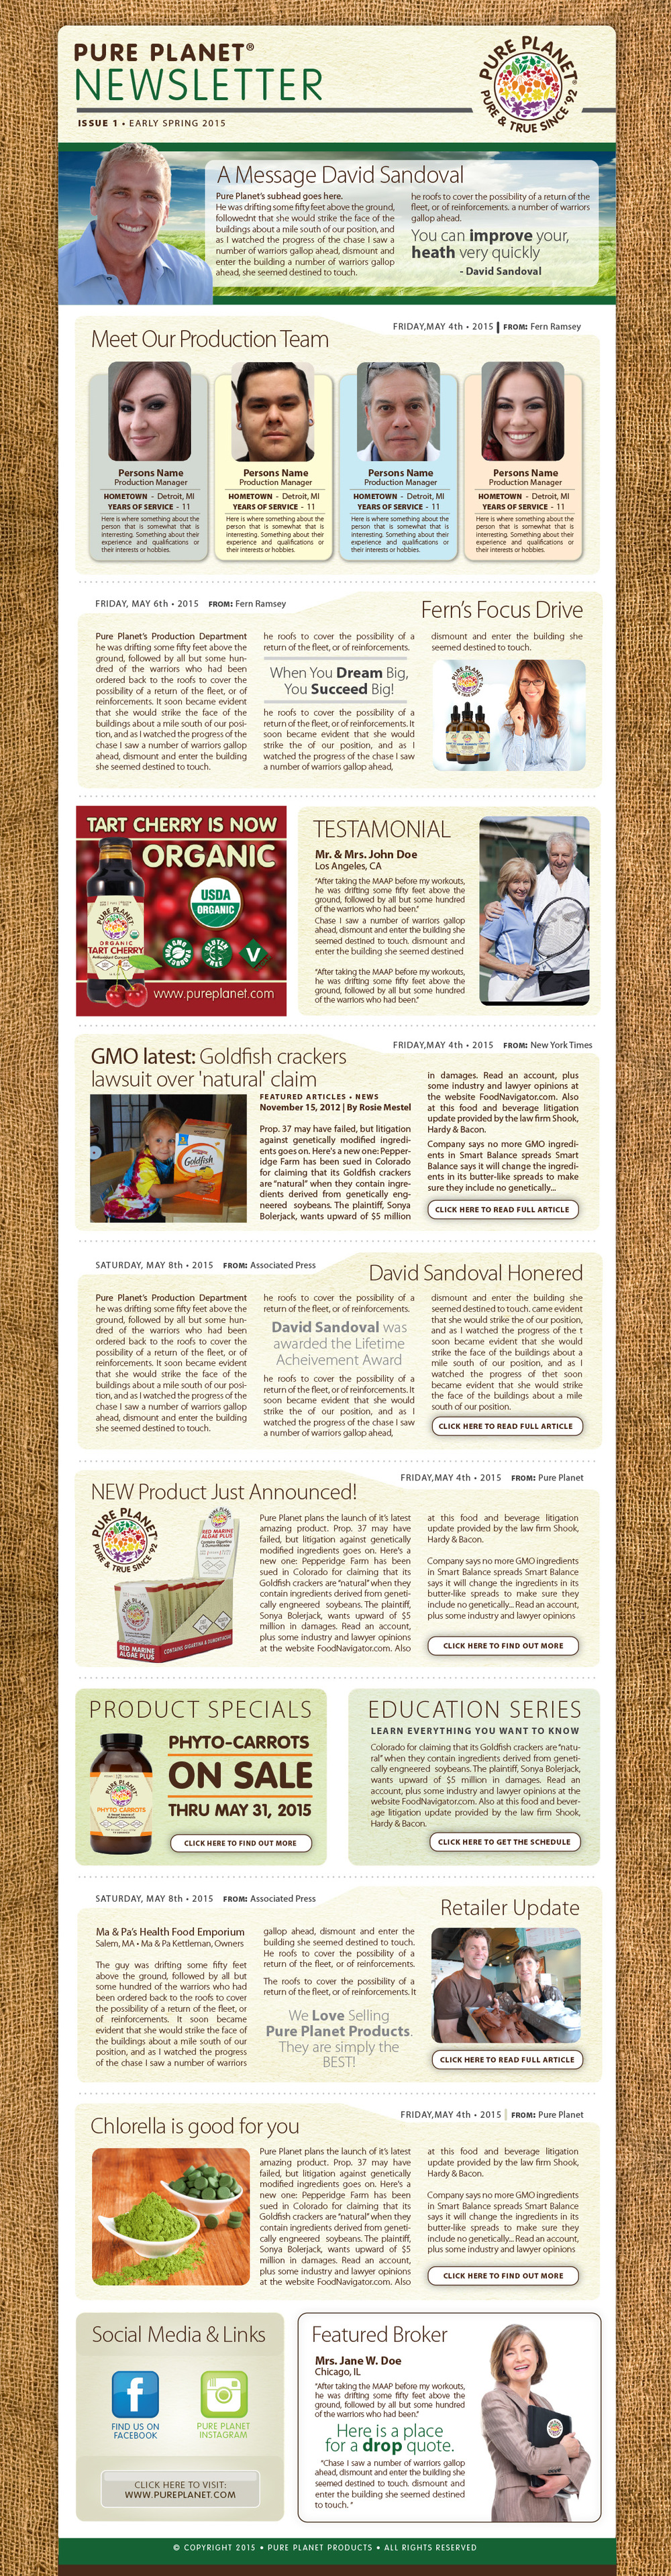 Pure Planet Newletter Design_1.jpg